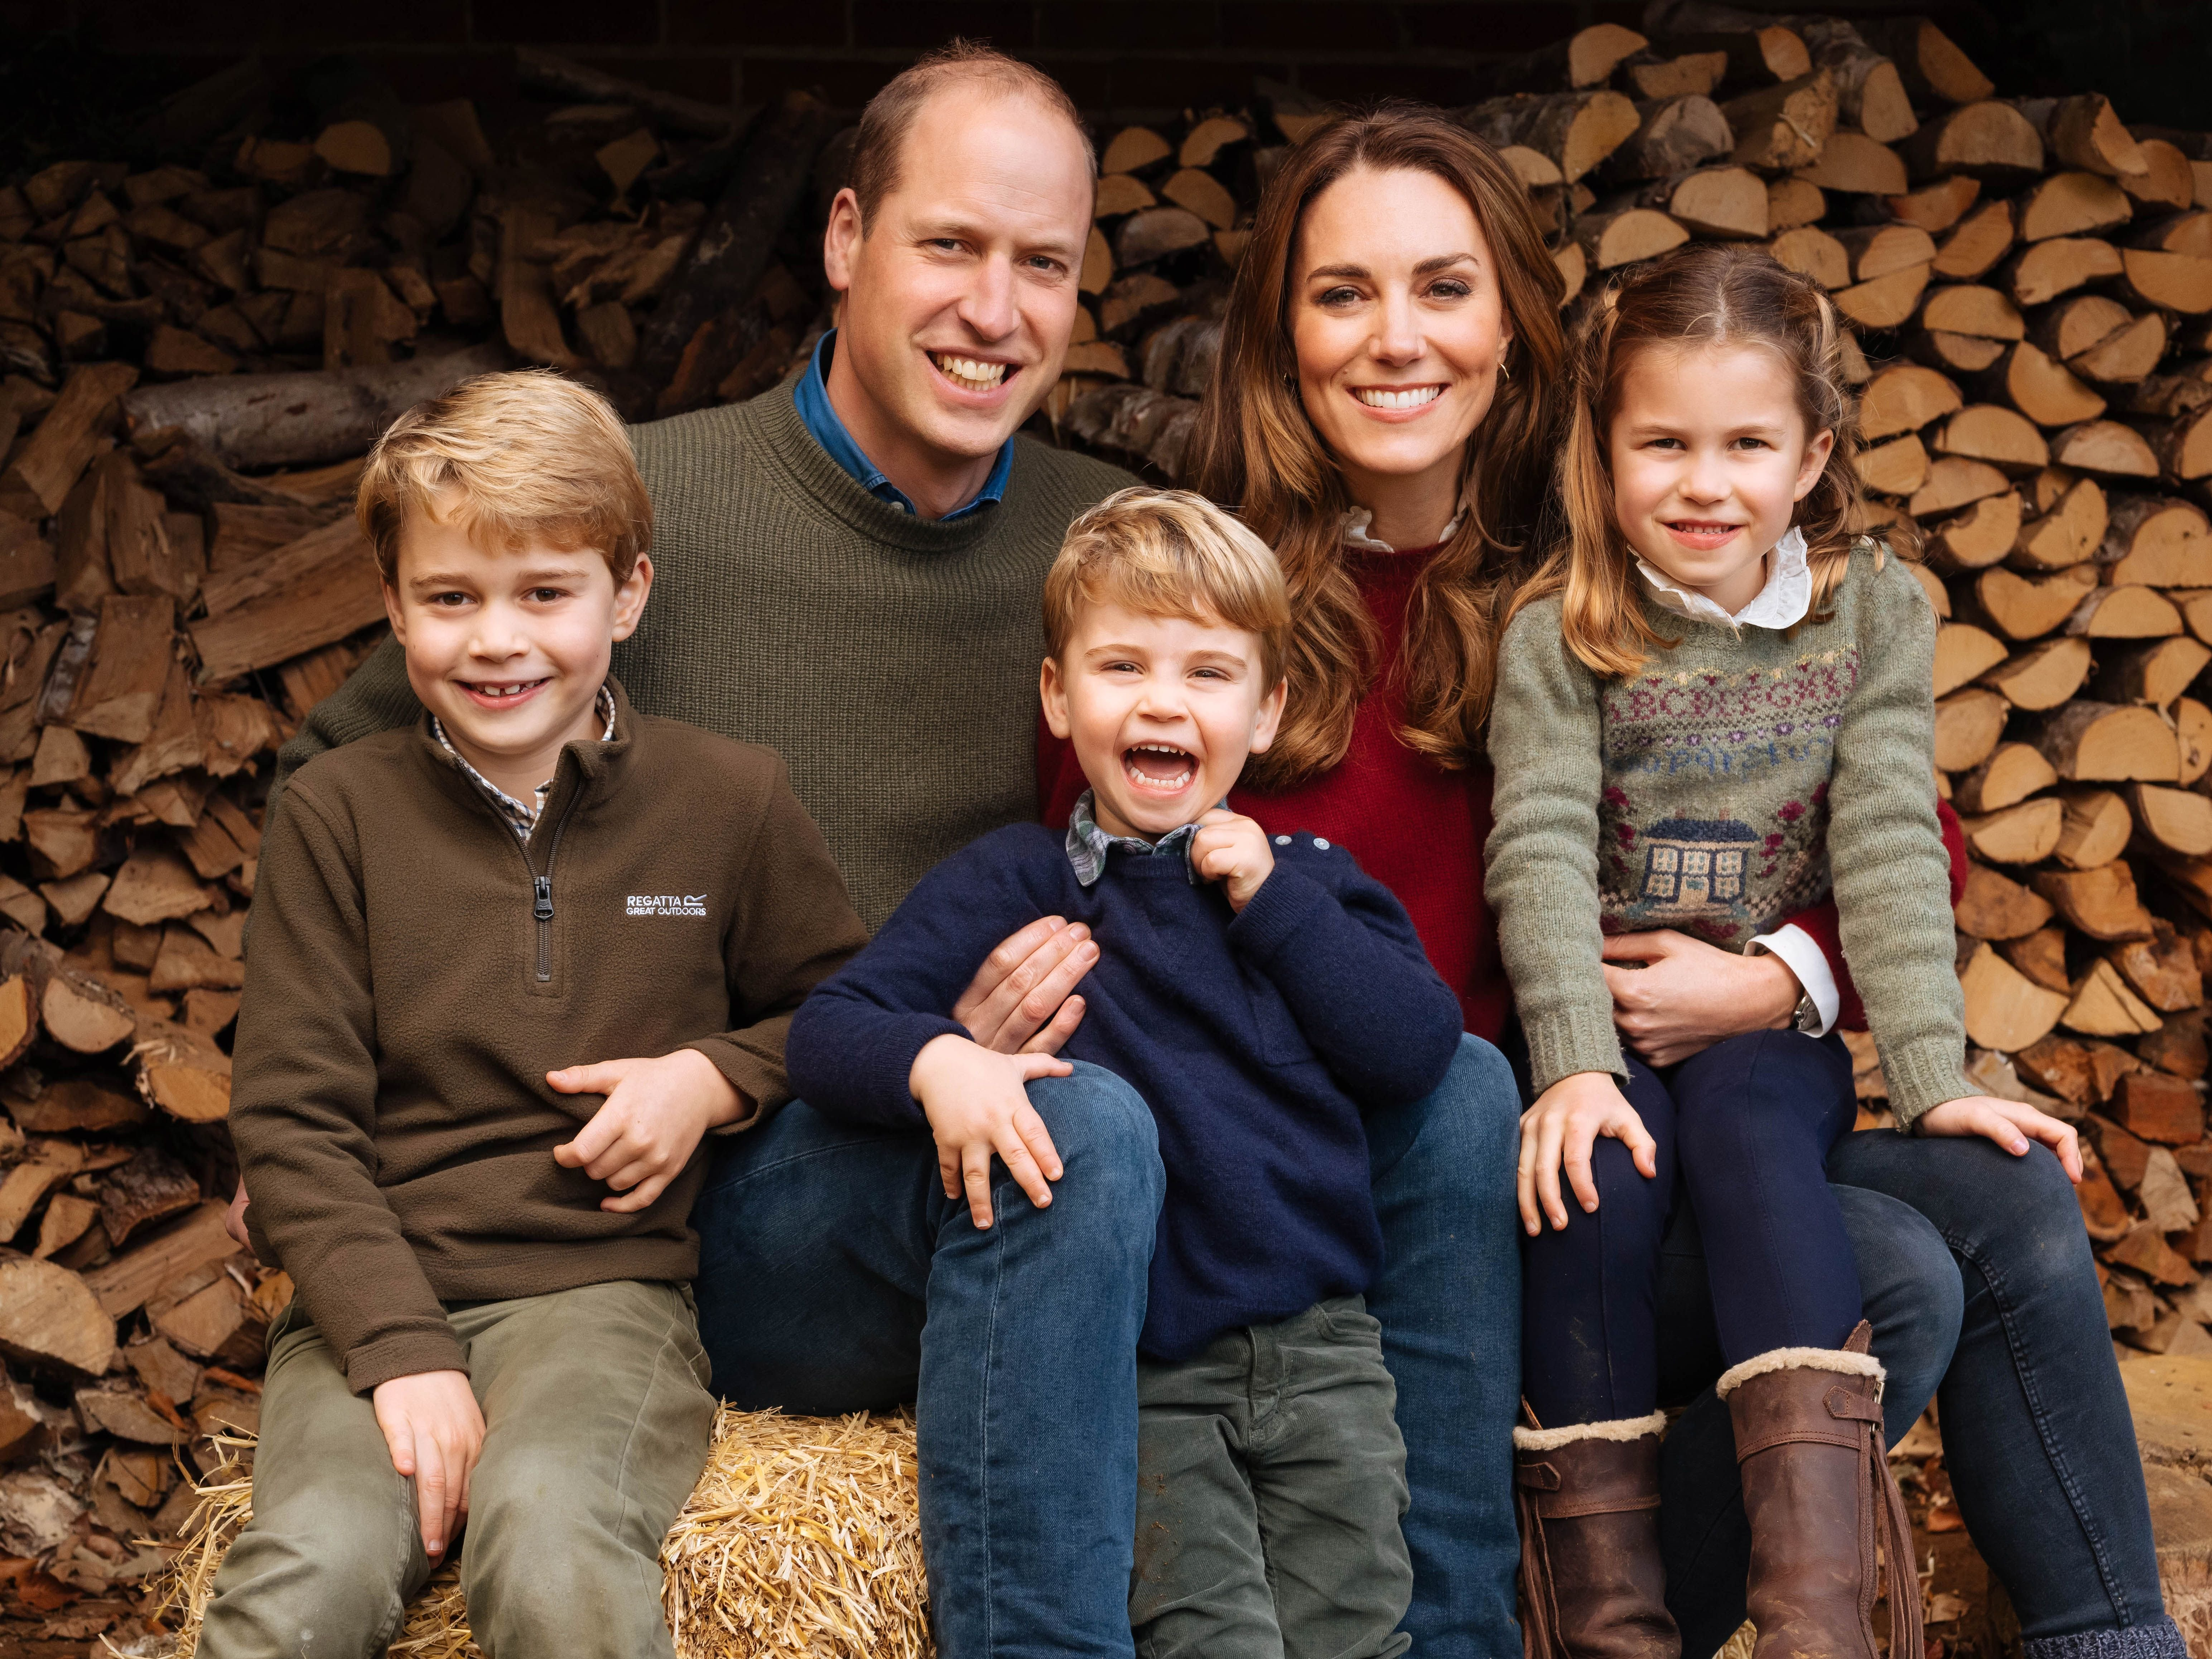 The Duke and Duchess of Cambridgewith their three children Prince George,Princess Charlotte,and Prince Louis at Anmer Hall in Norfolk on December 16, 2020  Photo: Matt Porteous/The Duke and Duchess of Cambridge/Kensington Palace/Getty Images